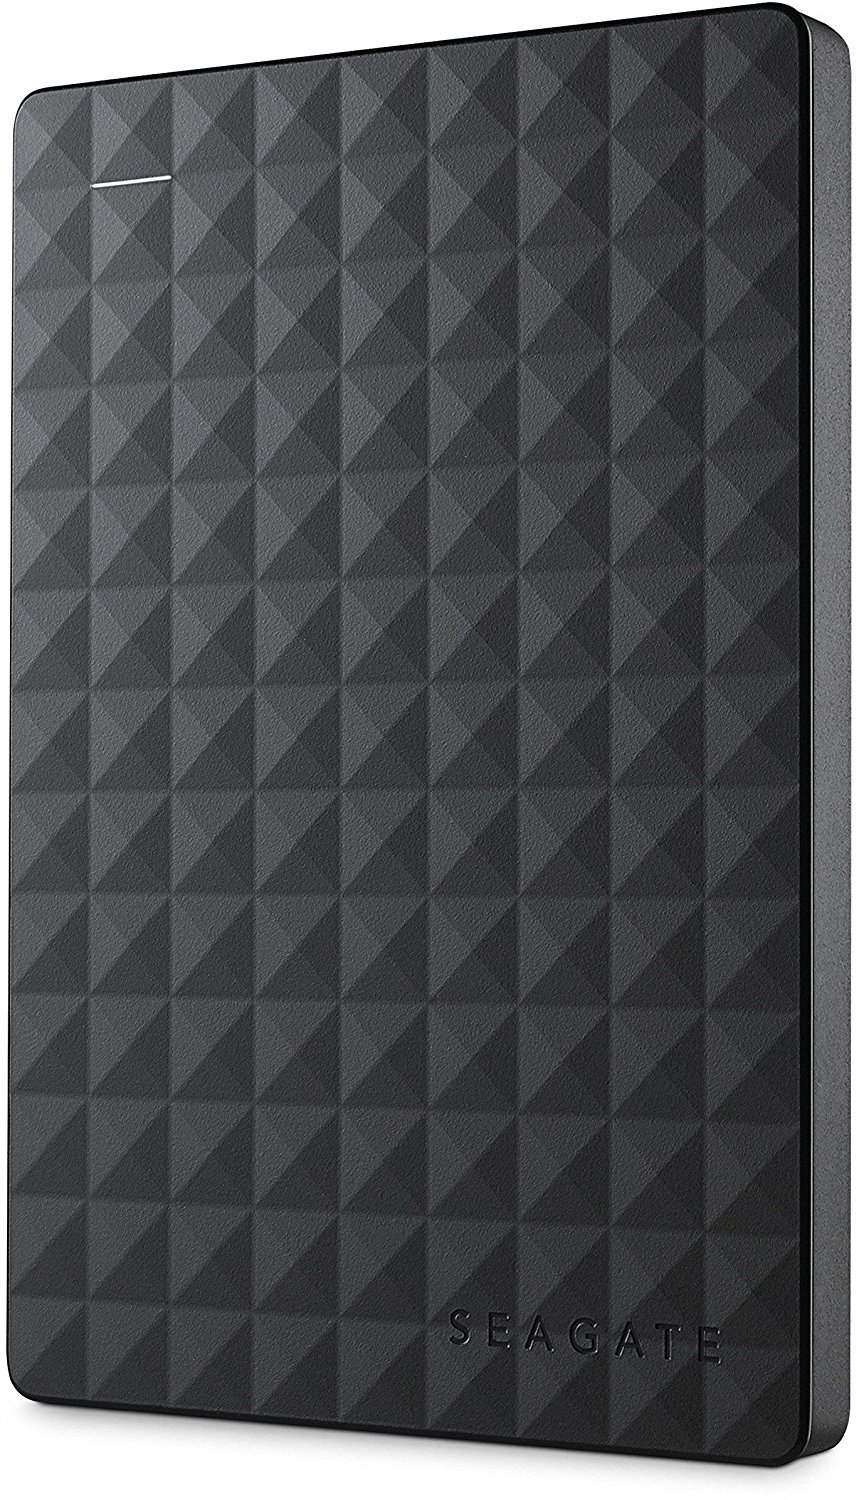 Seagate Expansion Portable USB 3.0 2.5in 1TB External Hard Drive - STEA1000400 (Renewed) by Seagate (Image #1)